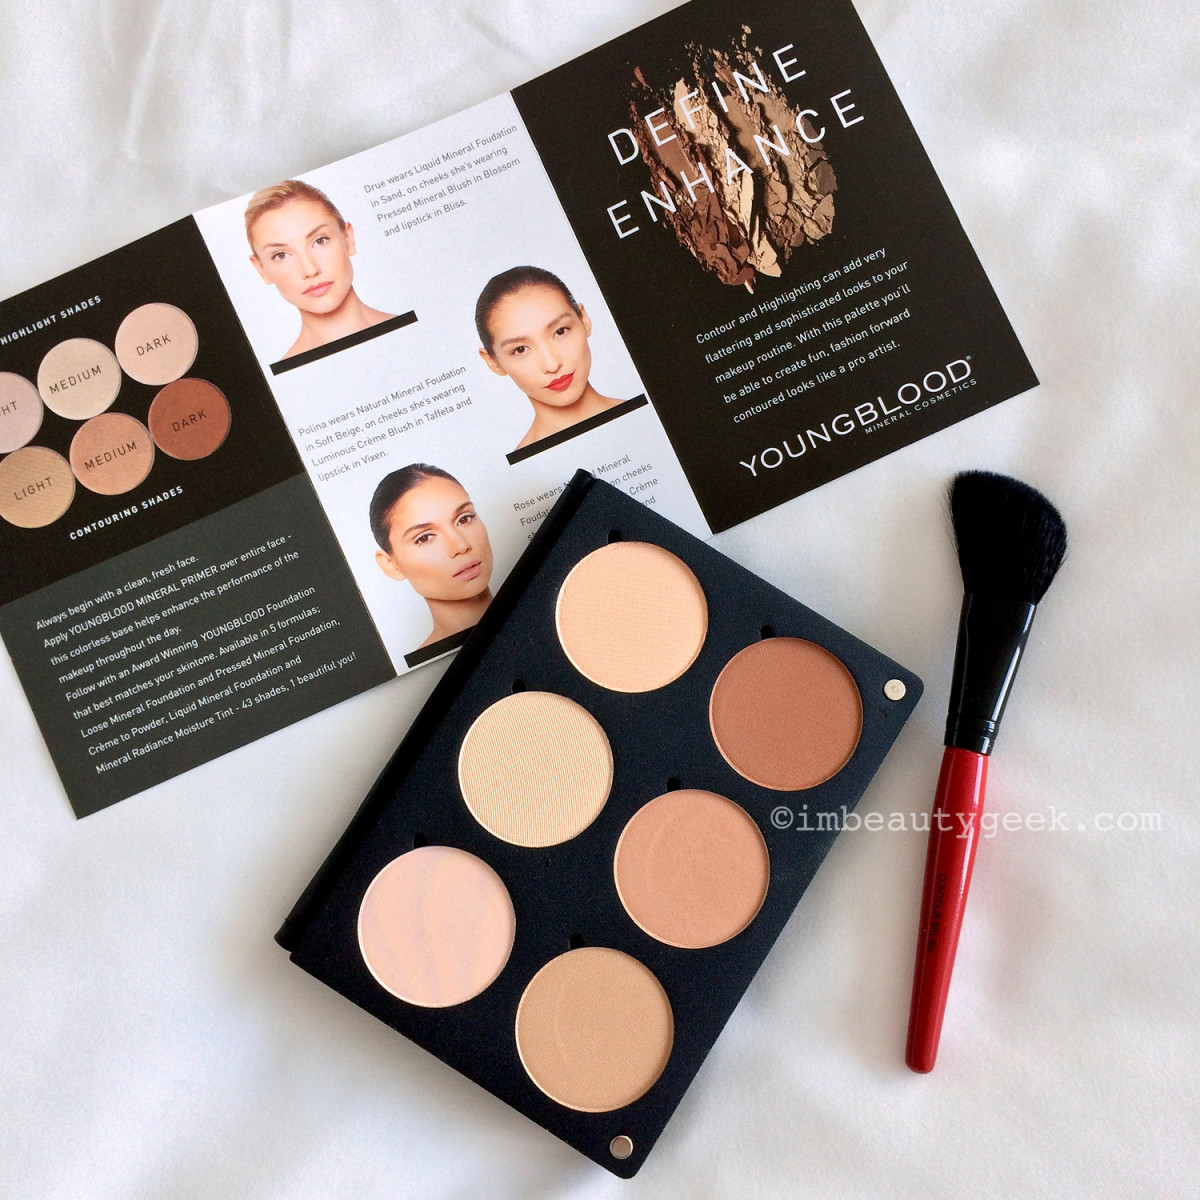 Youngblood Contour Palette_Smashbox mini angle face brush